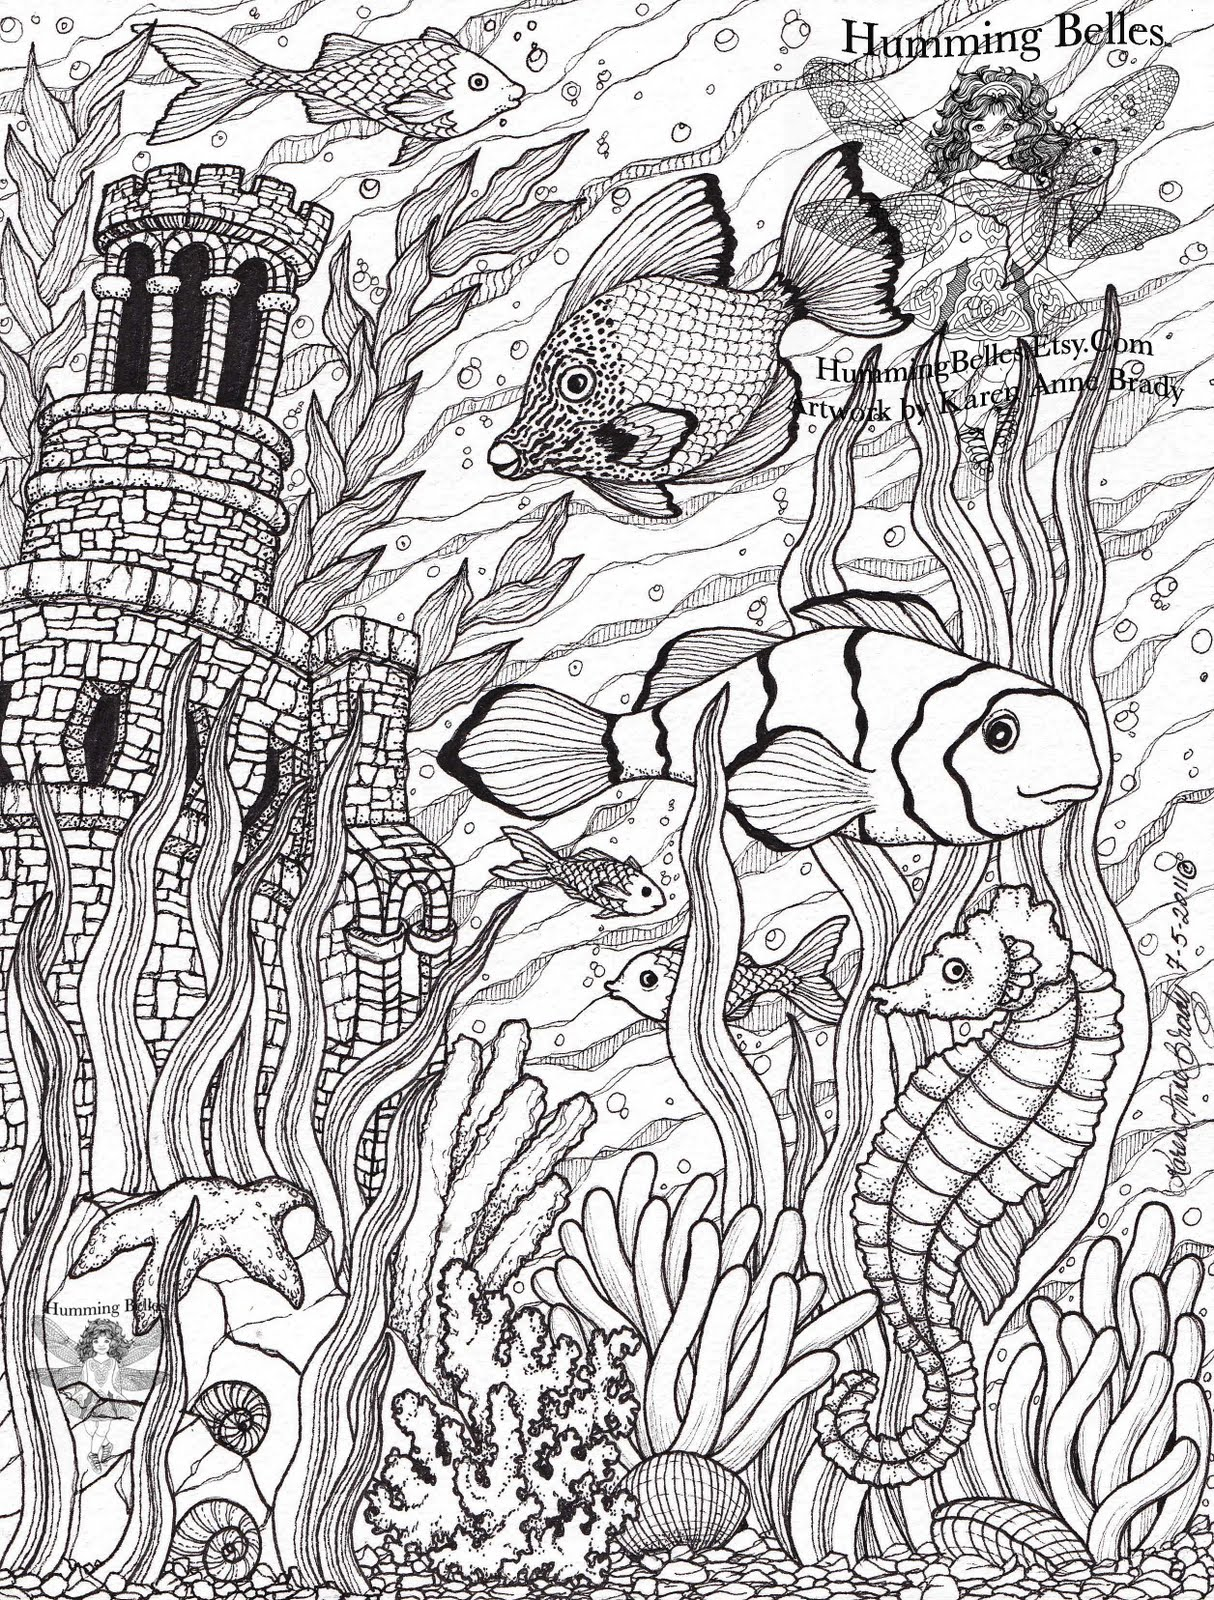 under sea coloring pages - humming belles new undersea illustrations and